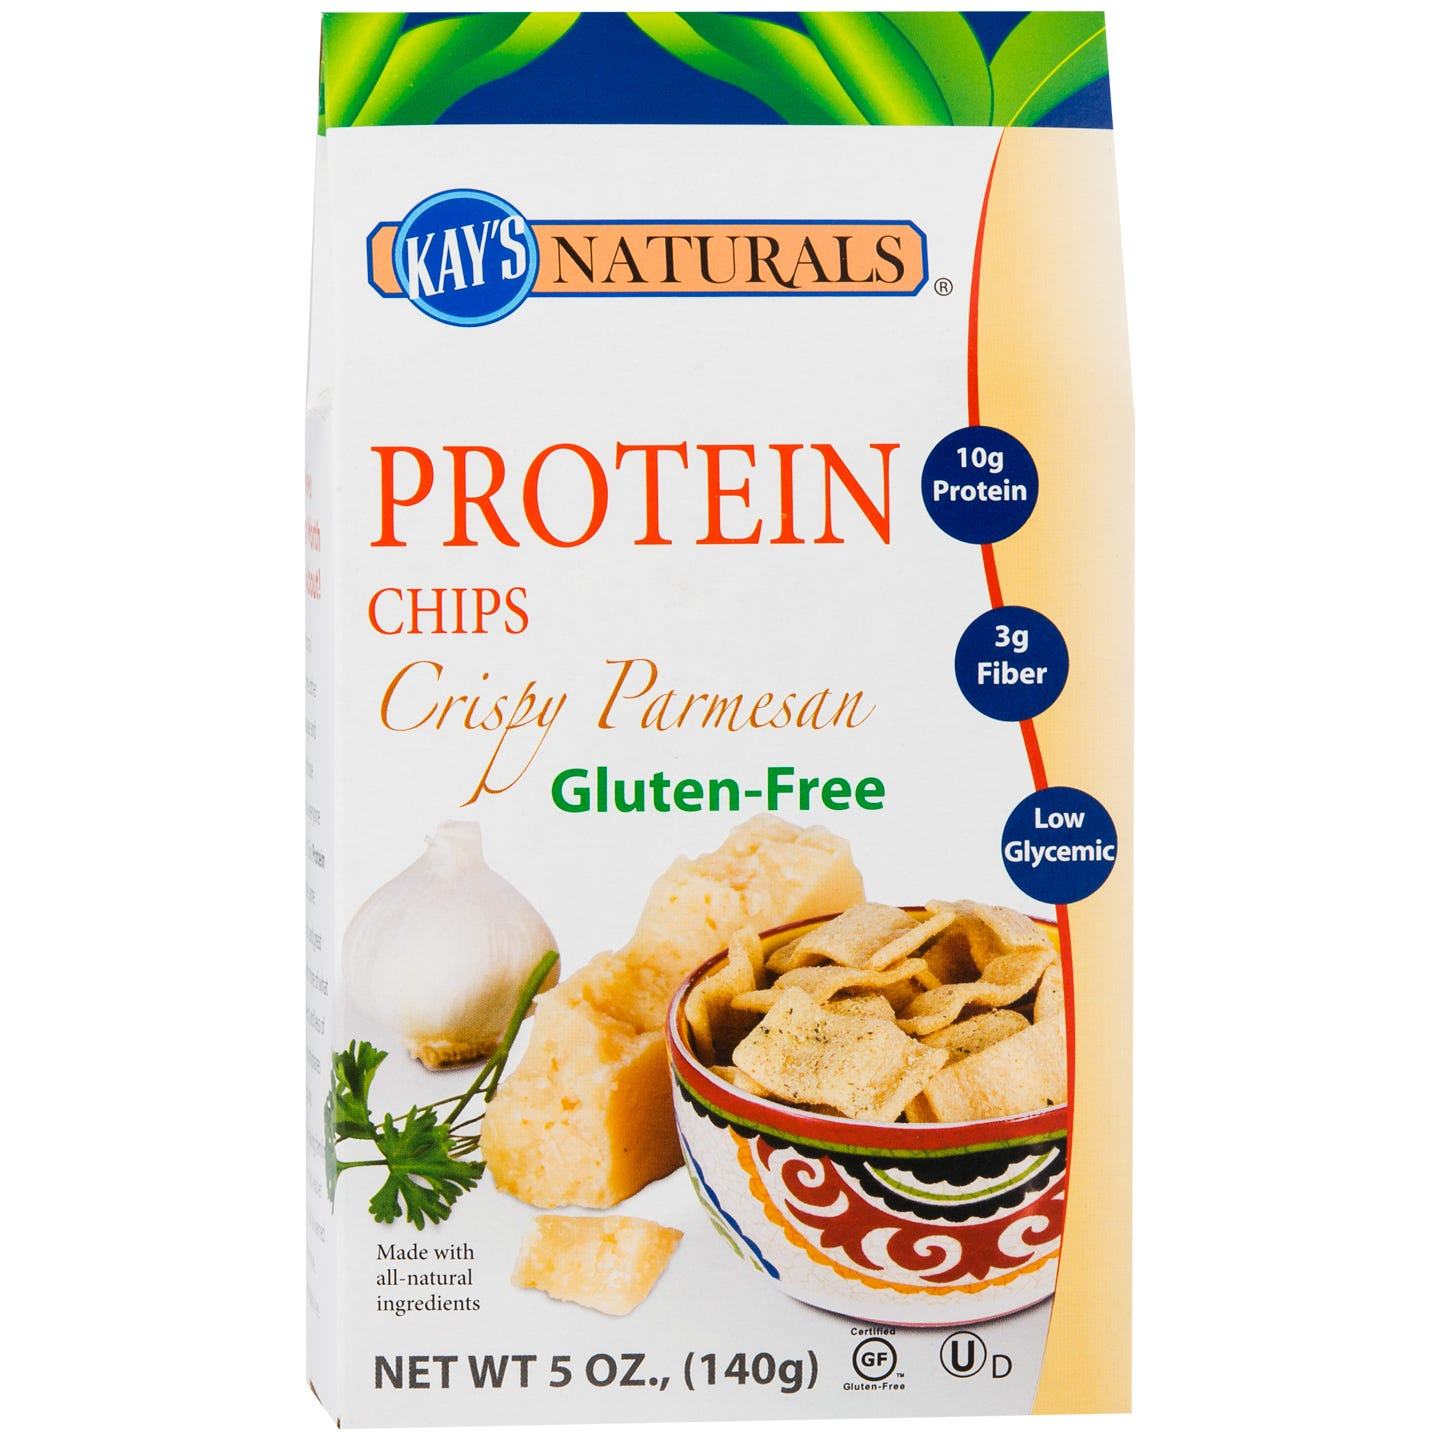 Protein Chips Crispy Parmesan (5 oz) - Kay's Naturals - Rapid Diet Weight Loss Products Shop